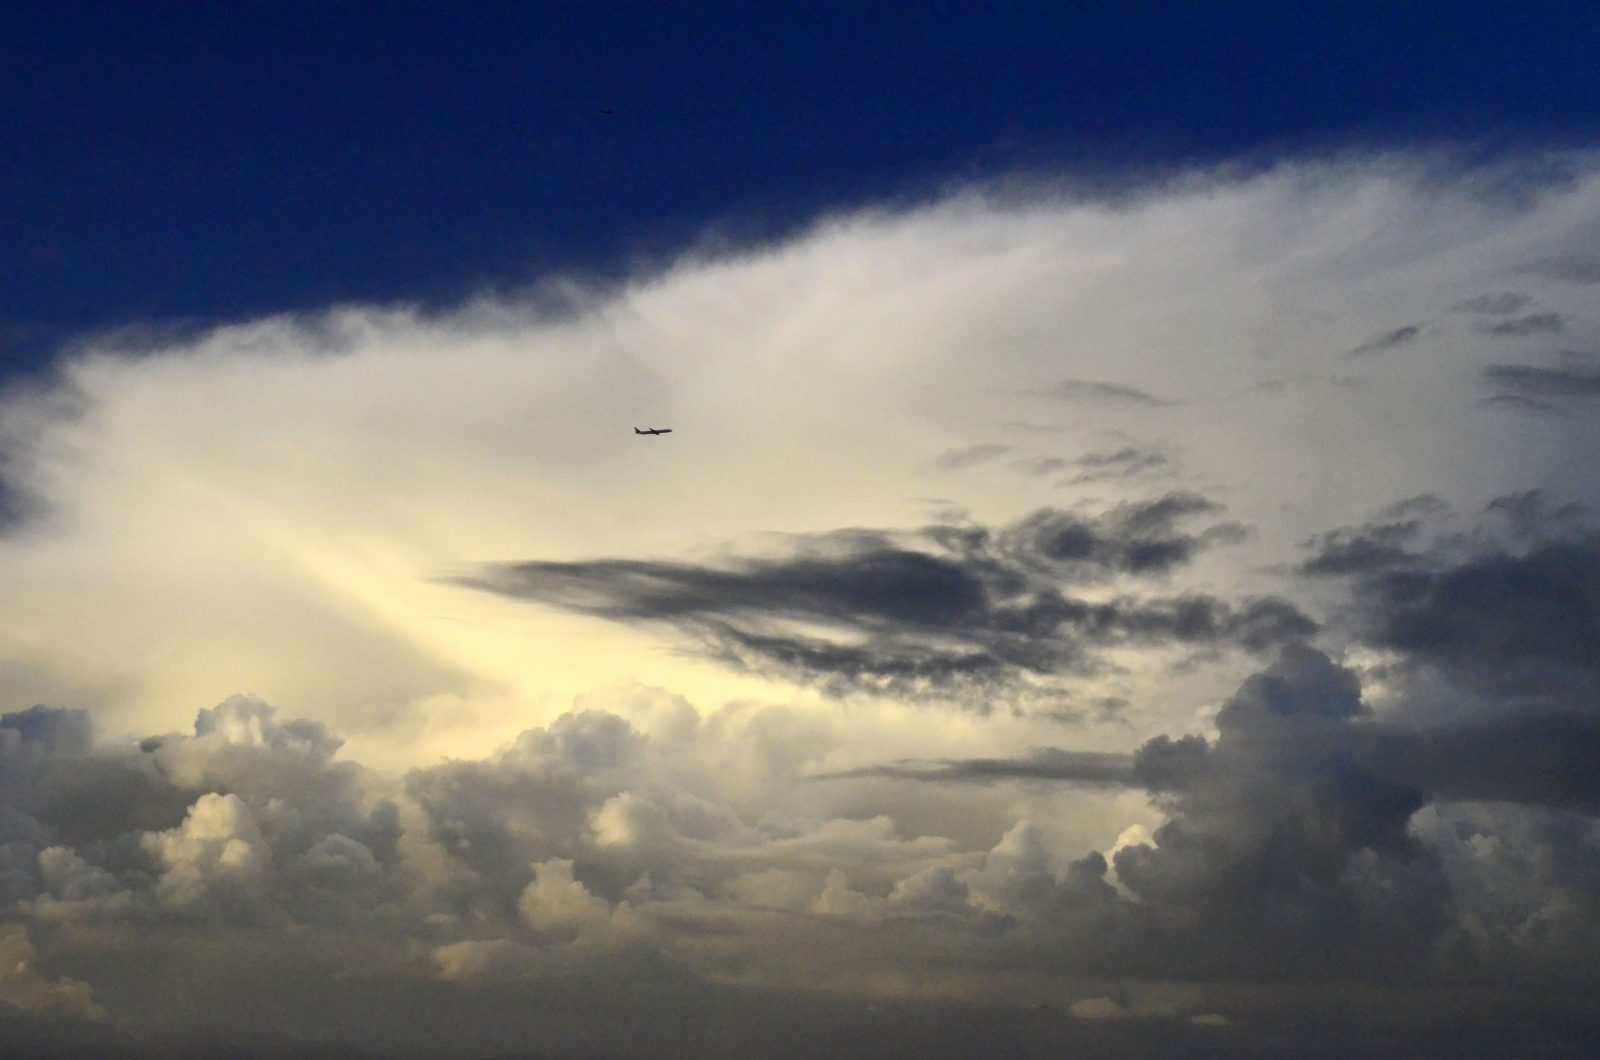 BIG Sky, Tiny Airliner